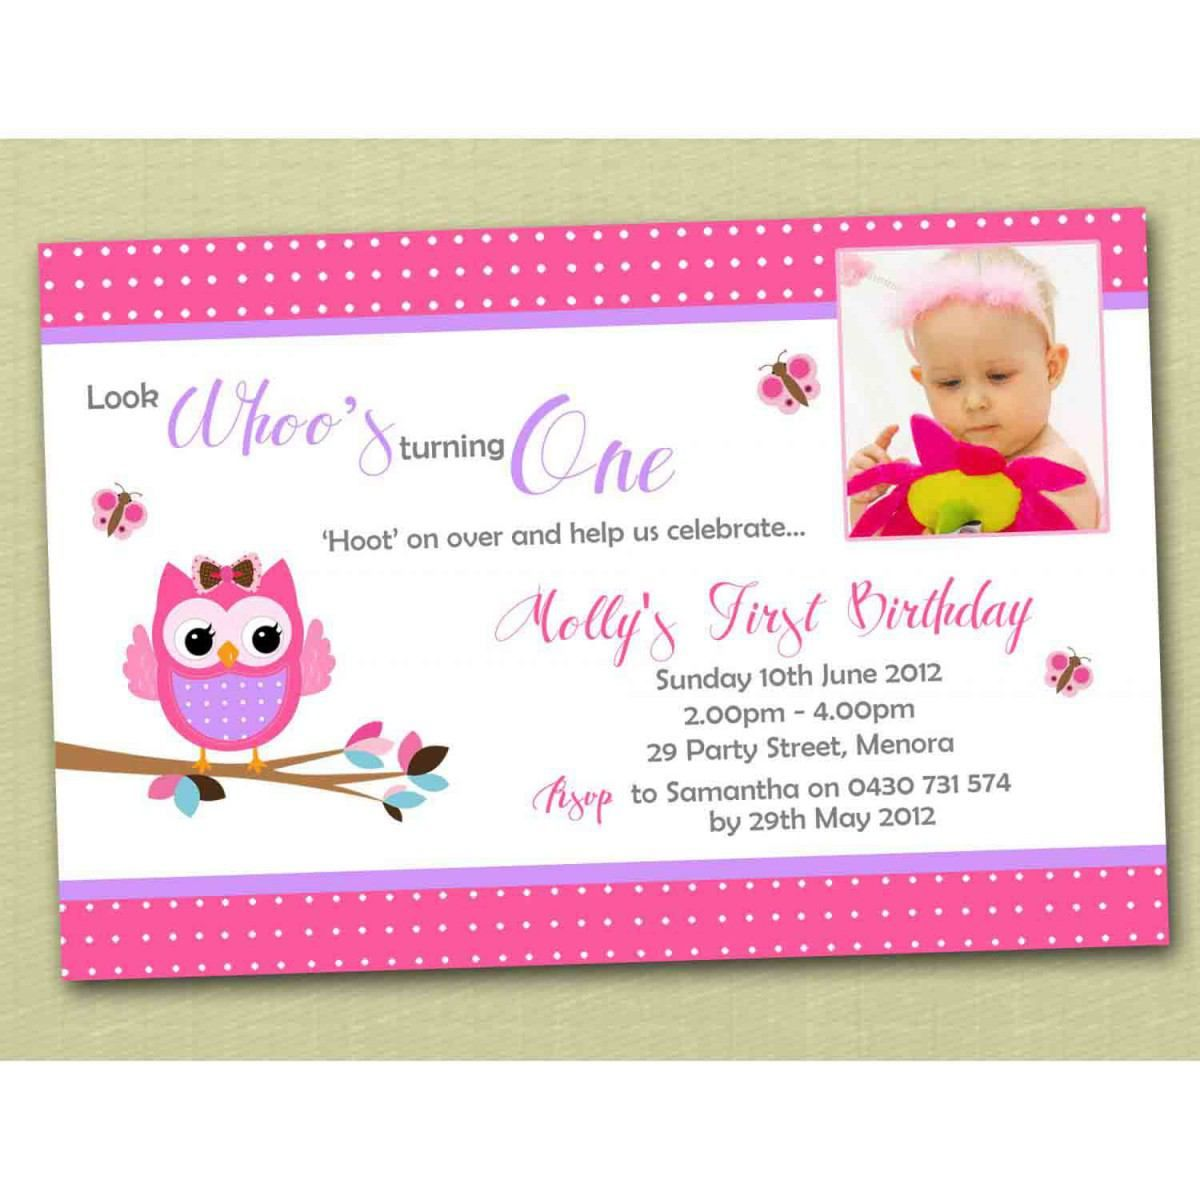 Christening Invitation Card Maker : Christening Invitation Maker ...